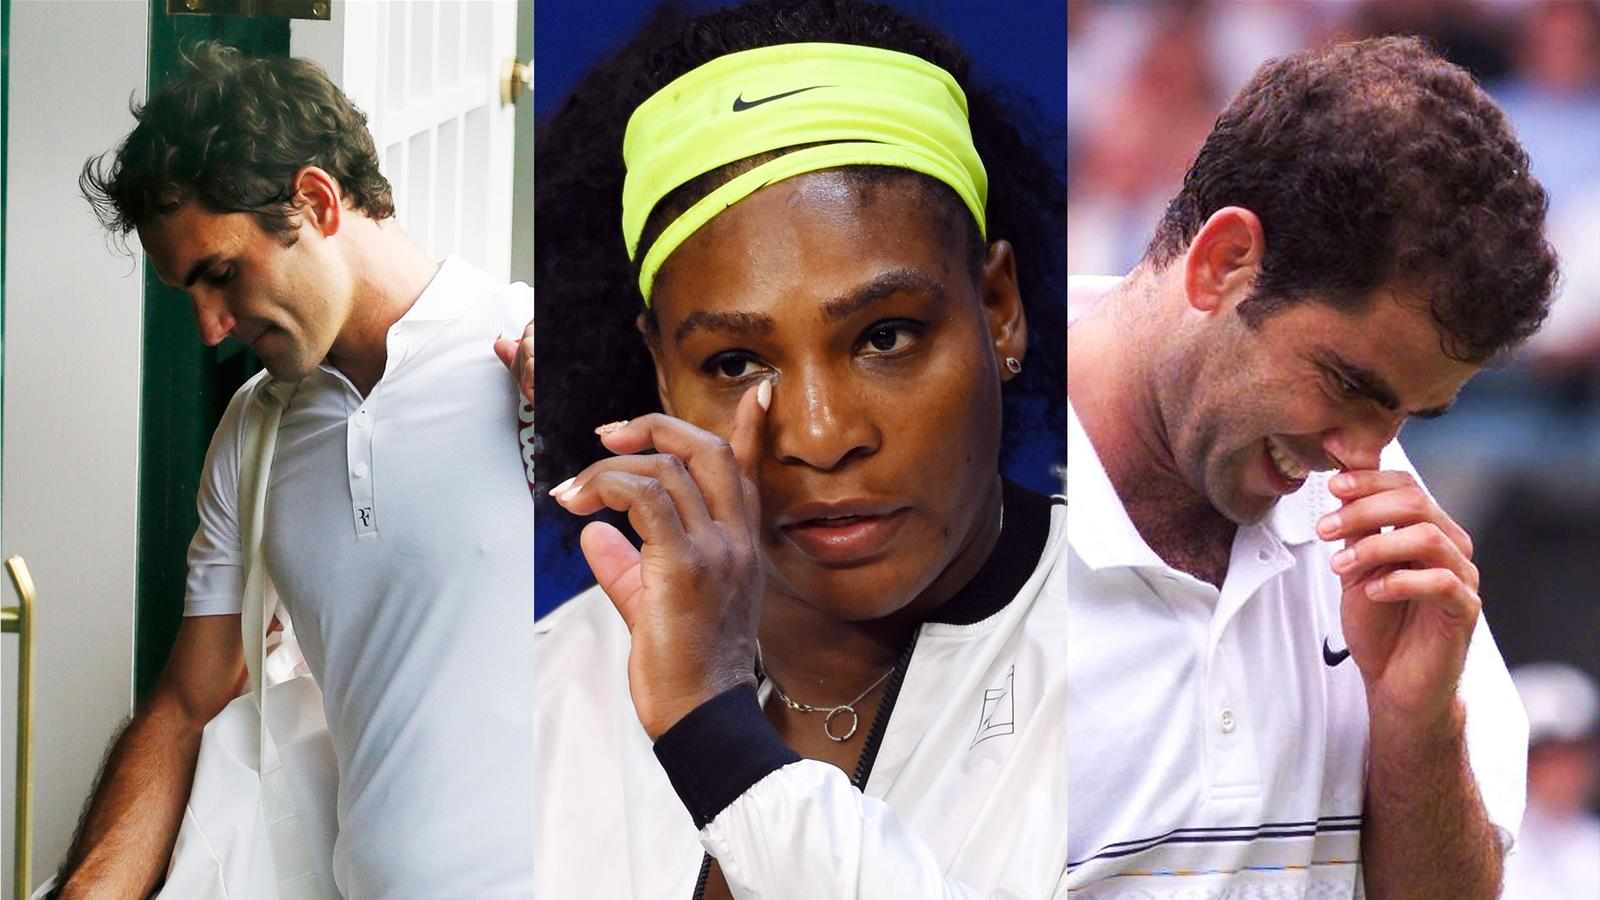 Roger Federer, Serena Williams and Pete Sampras after shock defeats